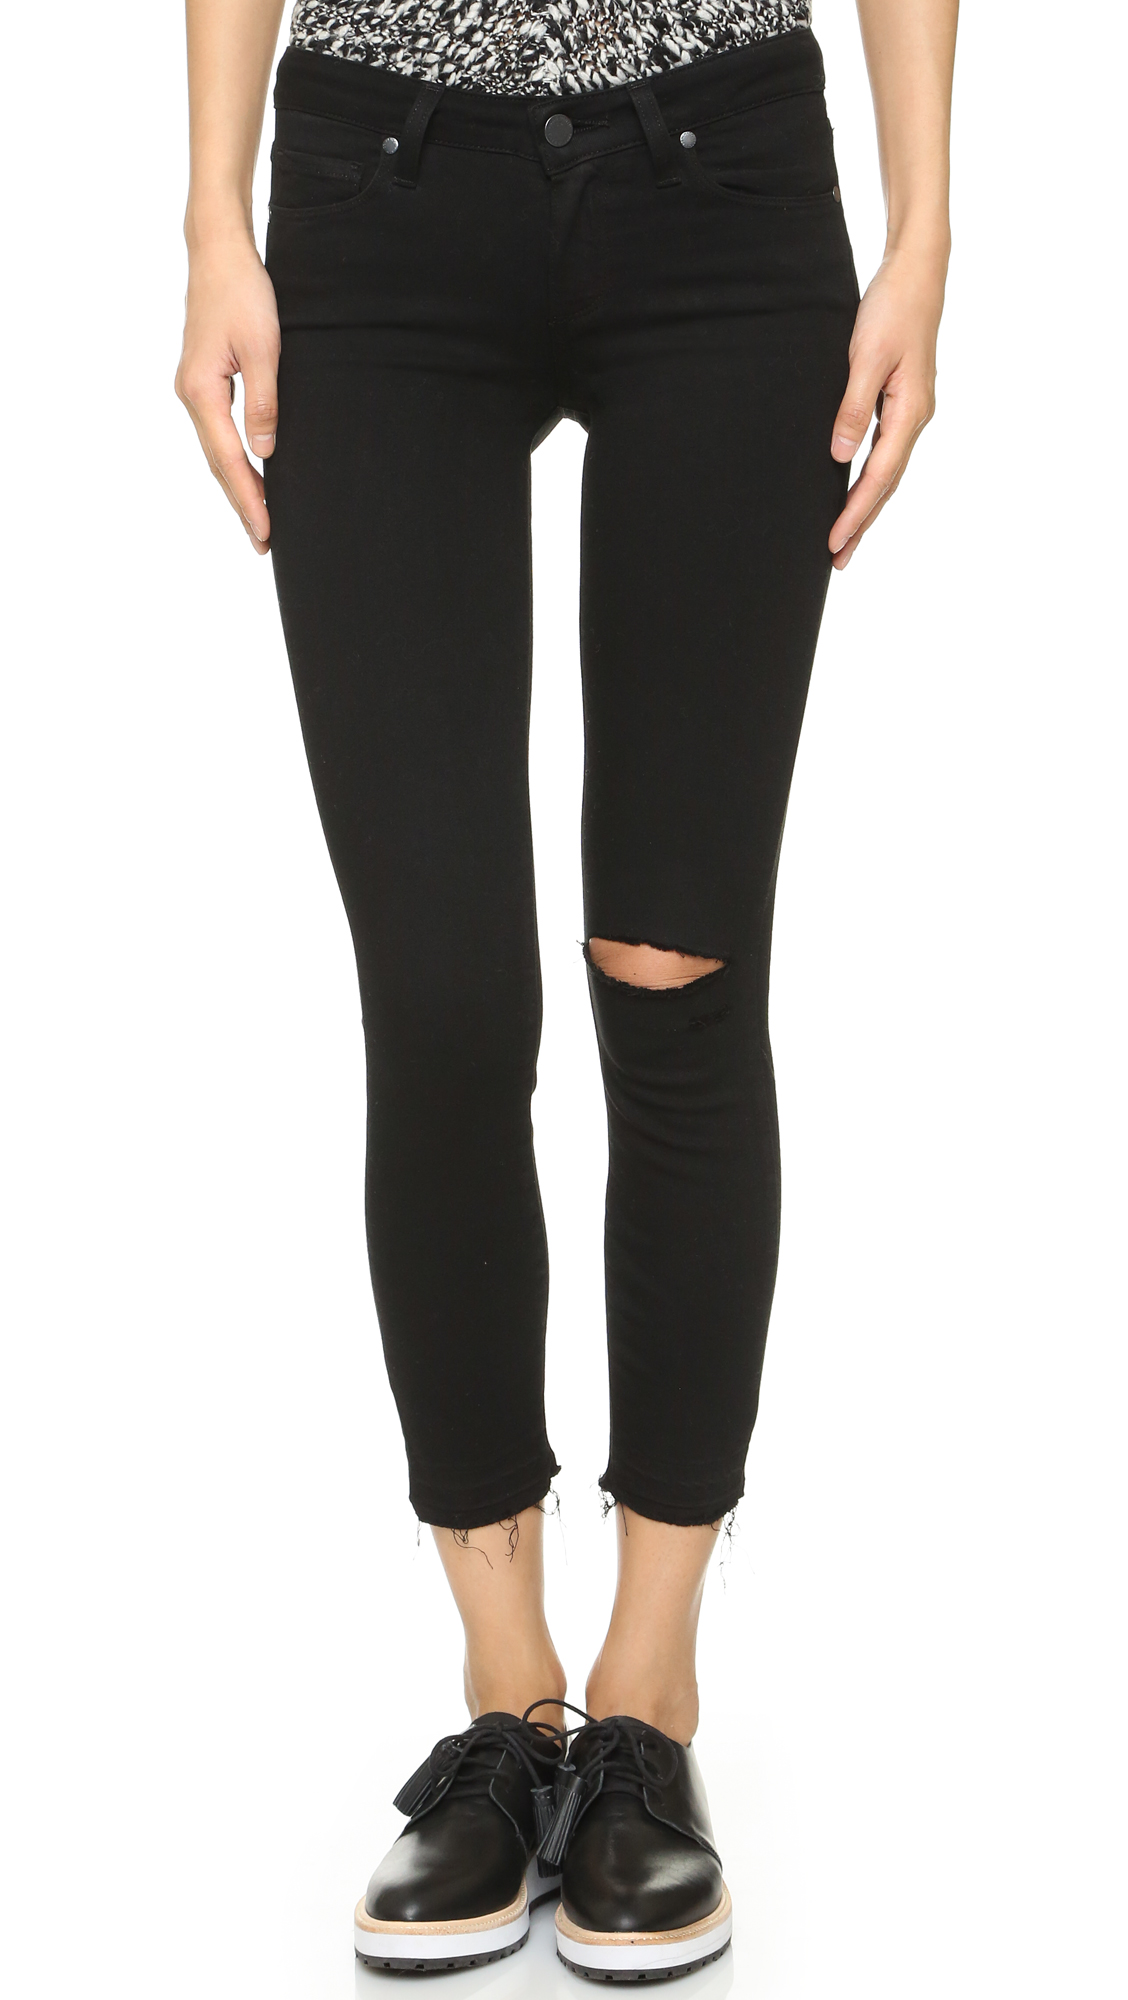 PAIGE Verdugo Crop Skinny Jeans | 15% off first app purchase with ...